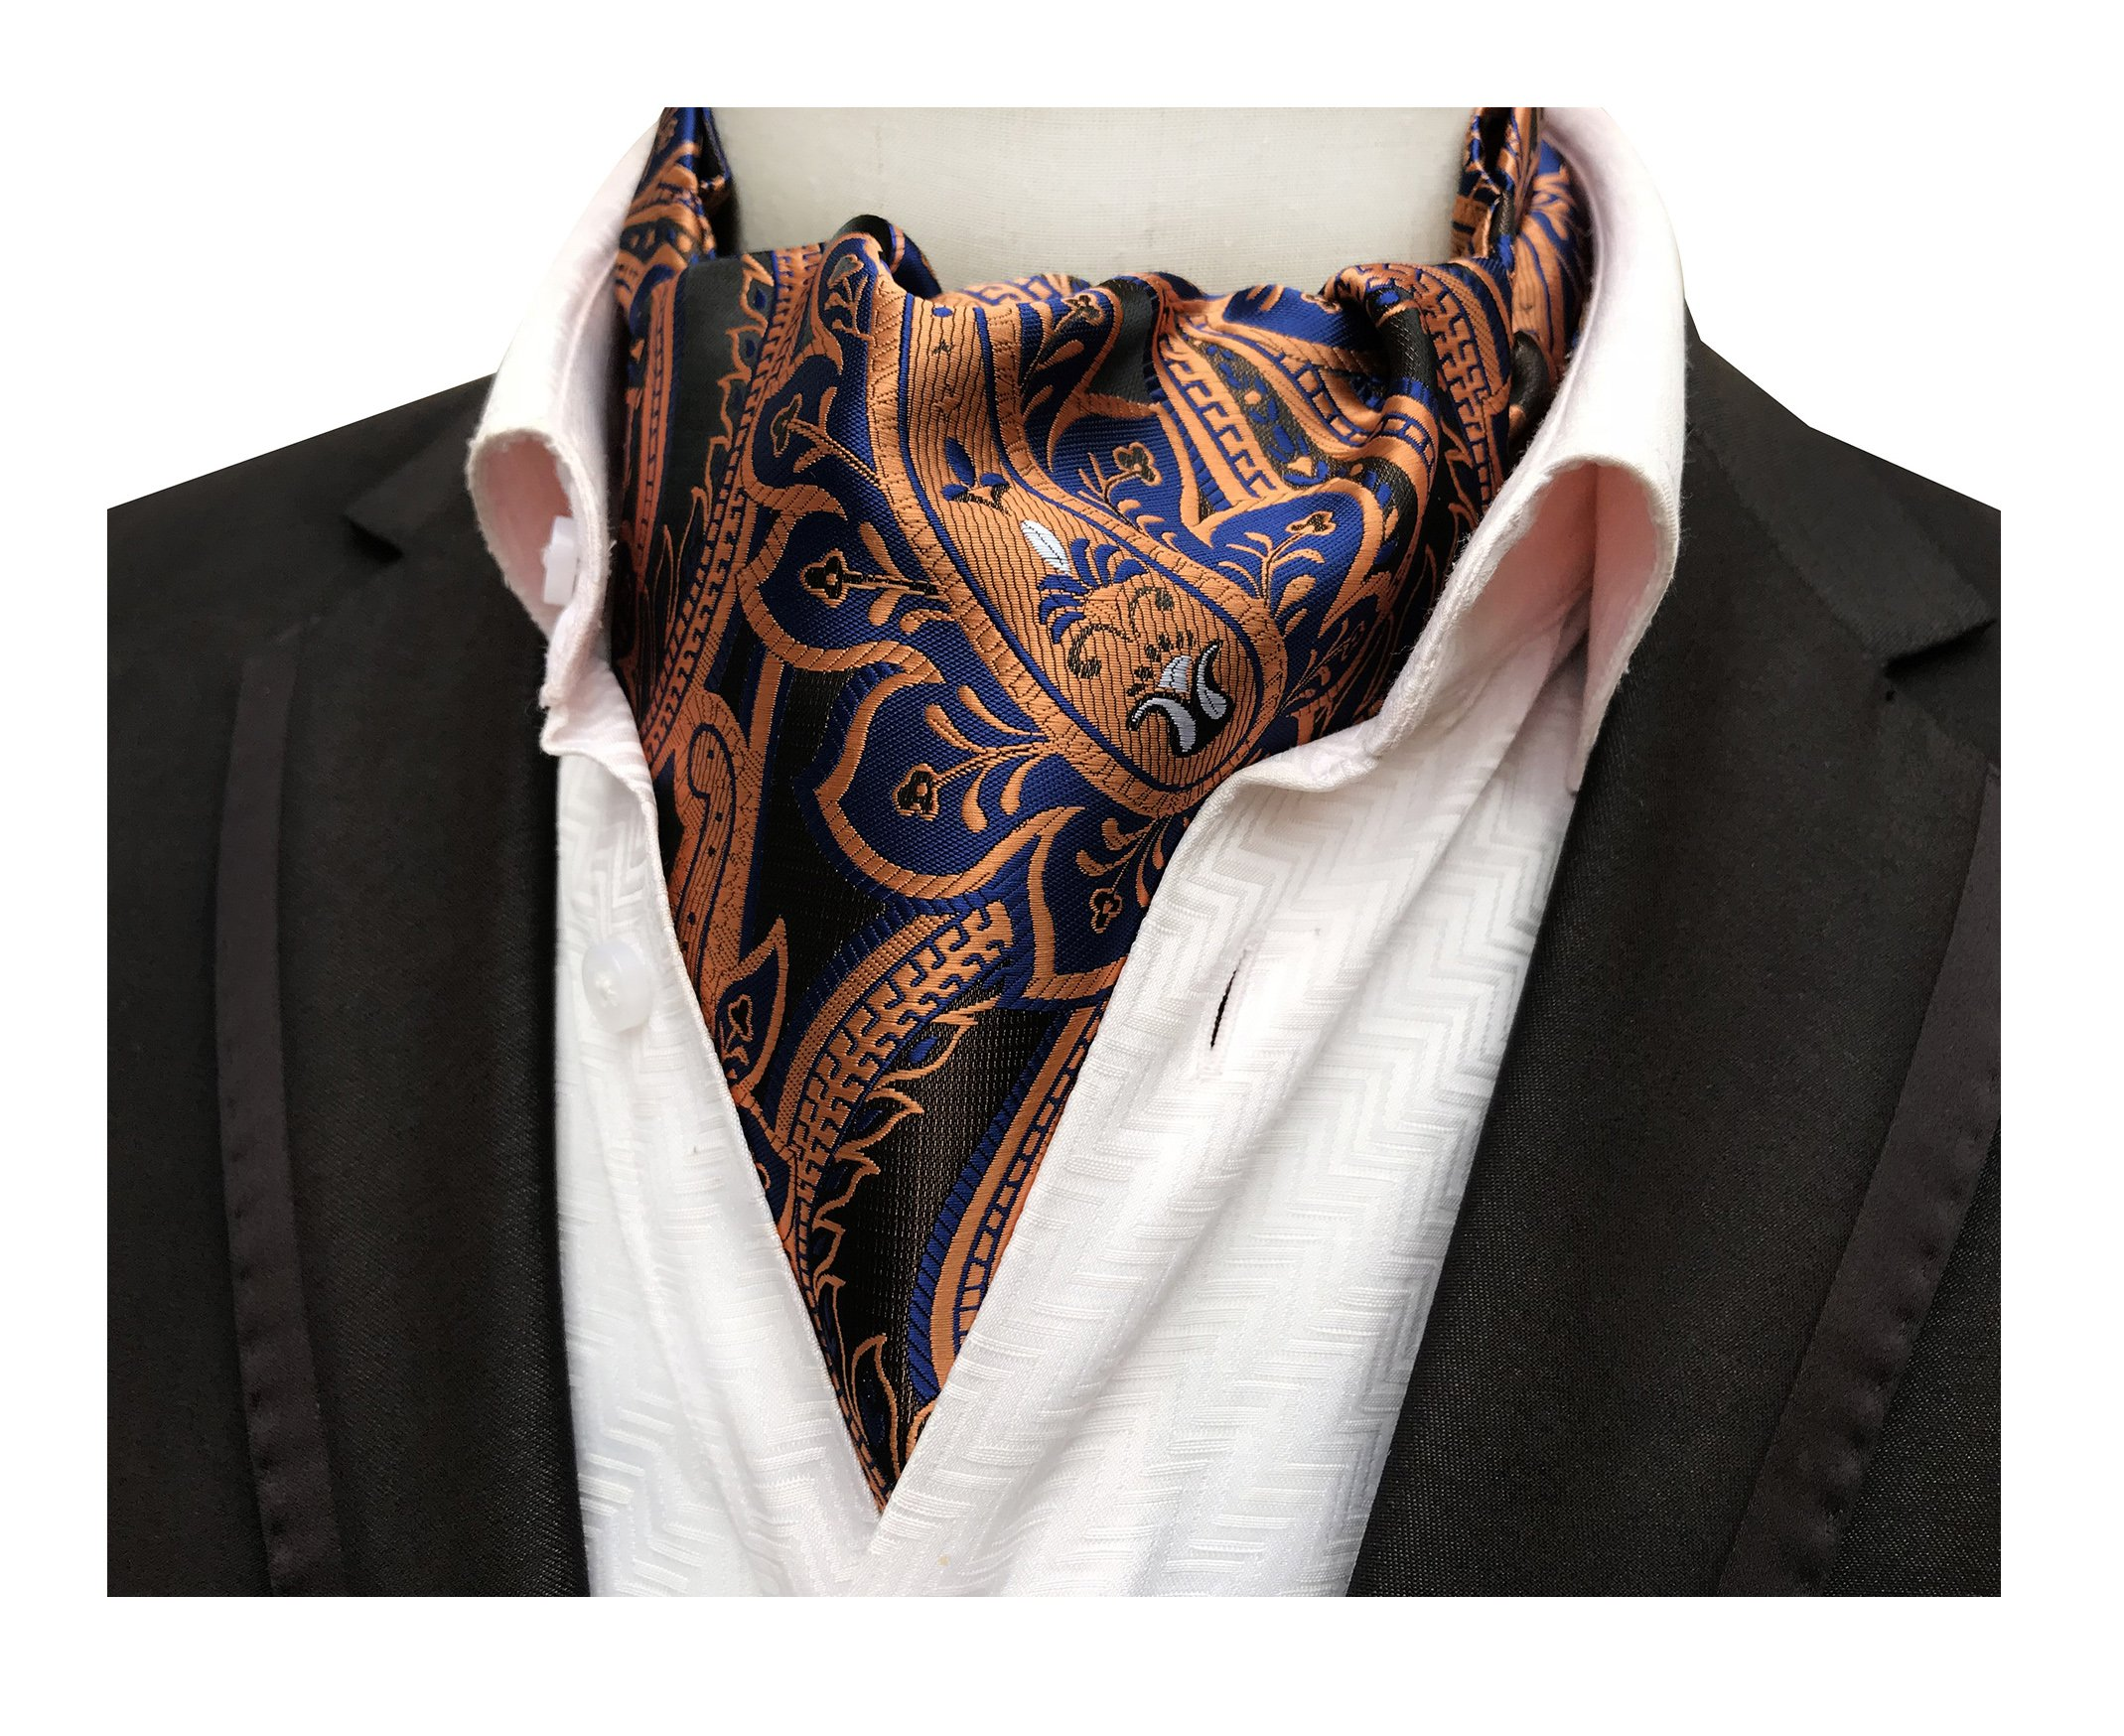 Brass Blue Coppers Cravat Ascot Ties Paisley Patterned for Mens Wedding Banquet